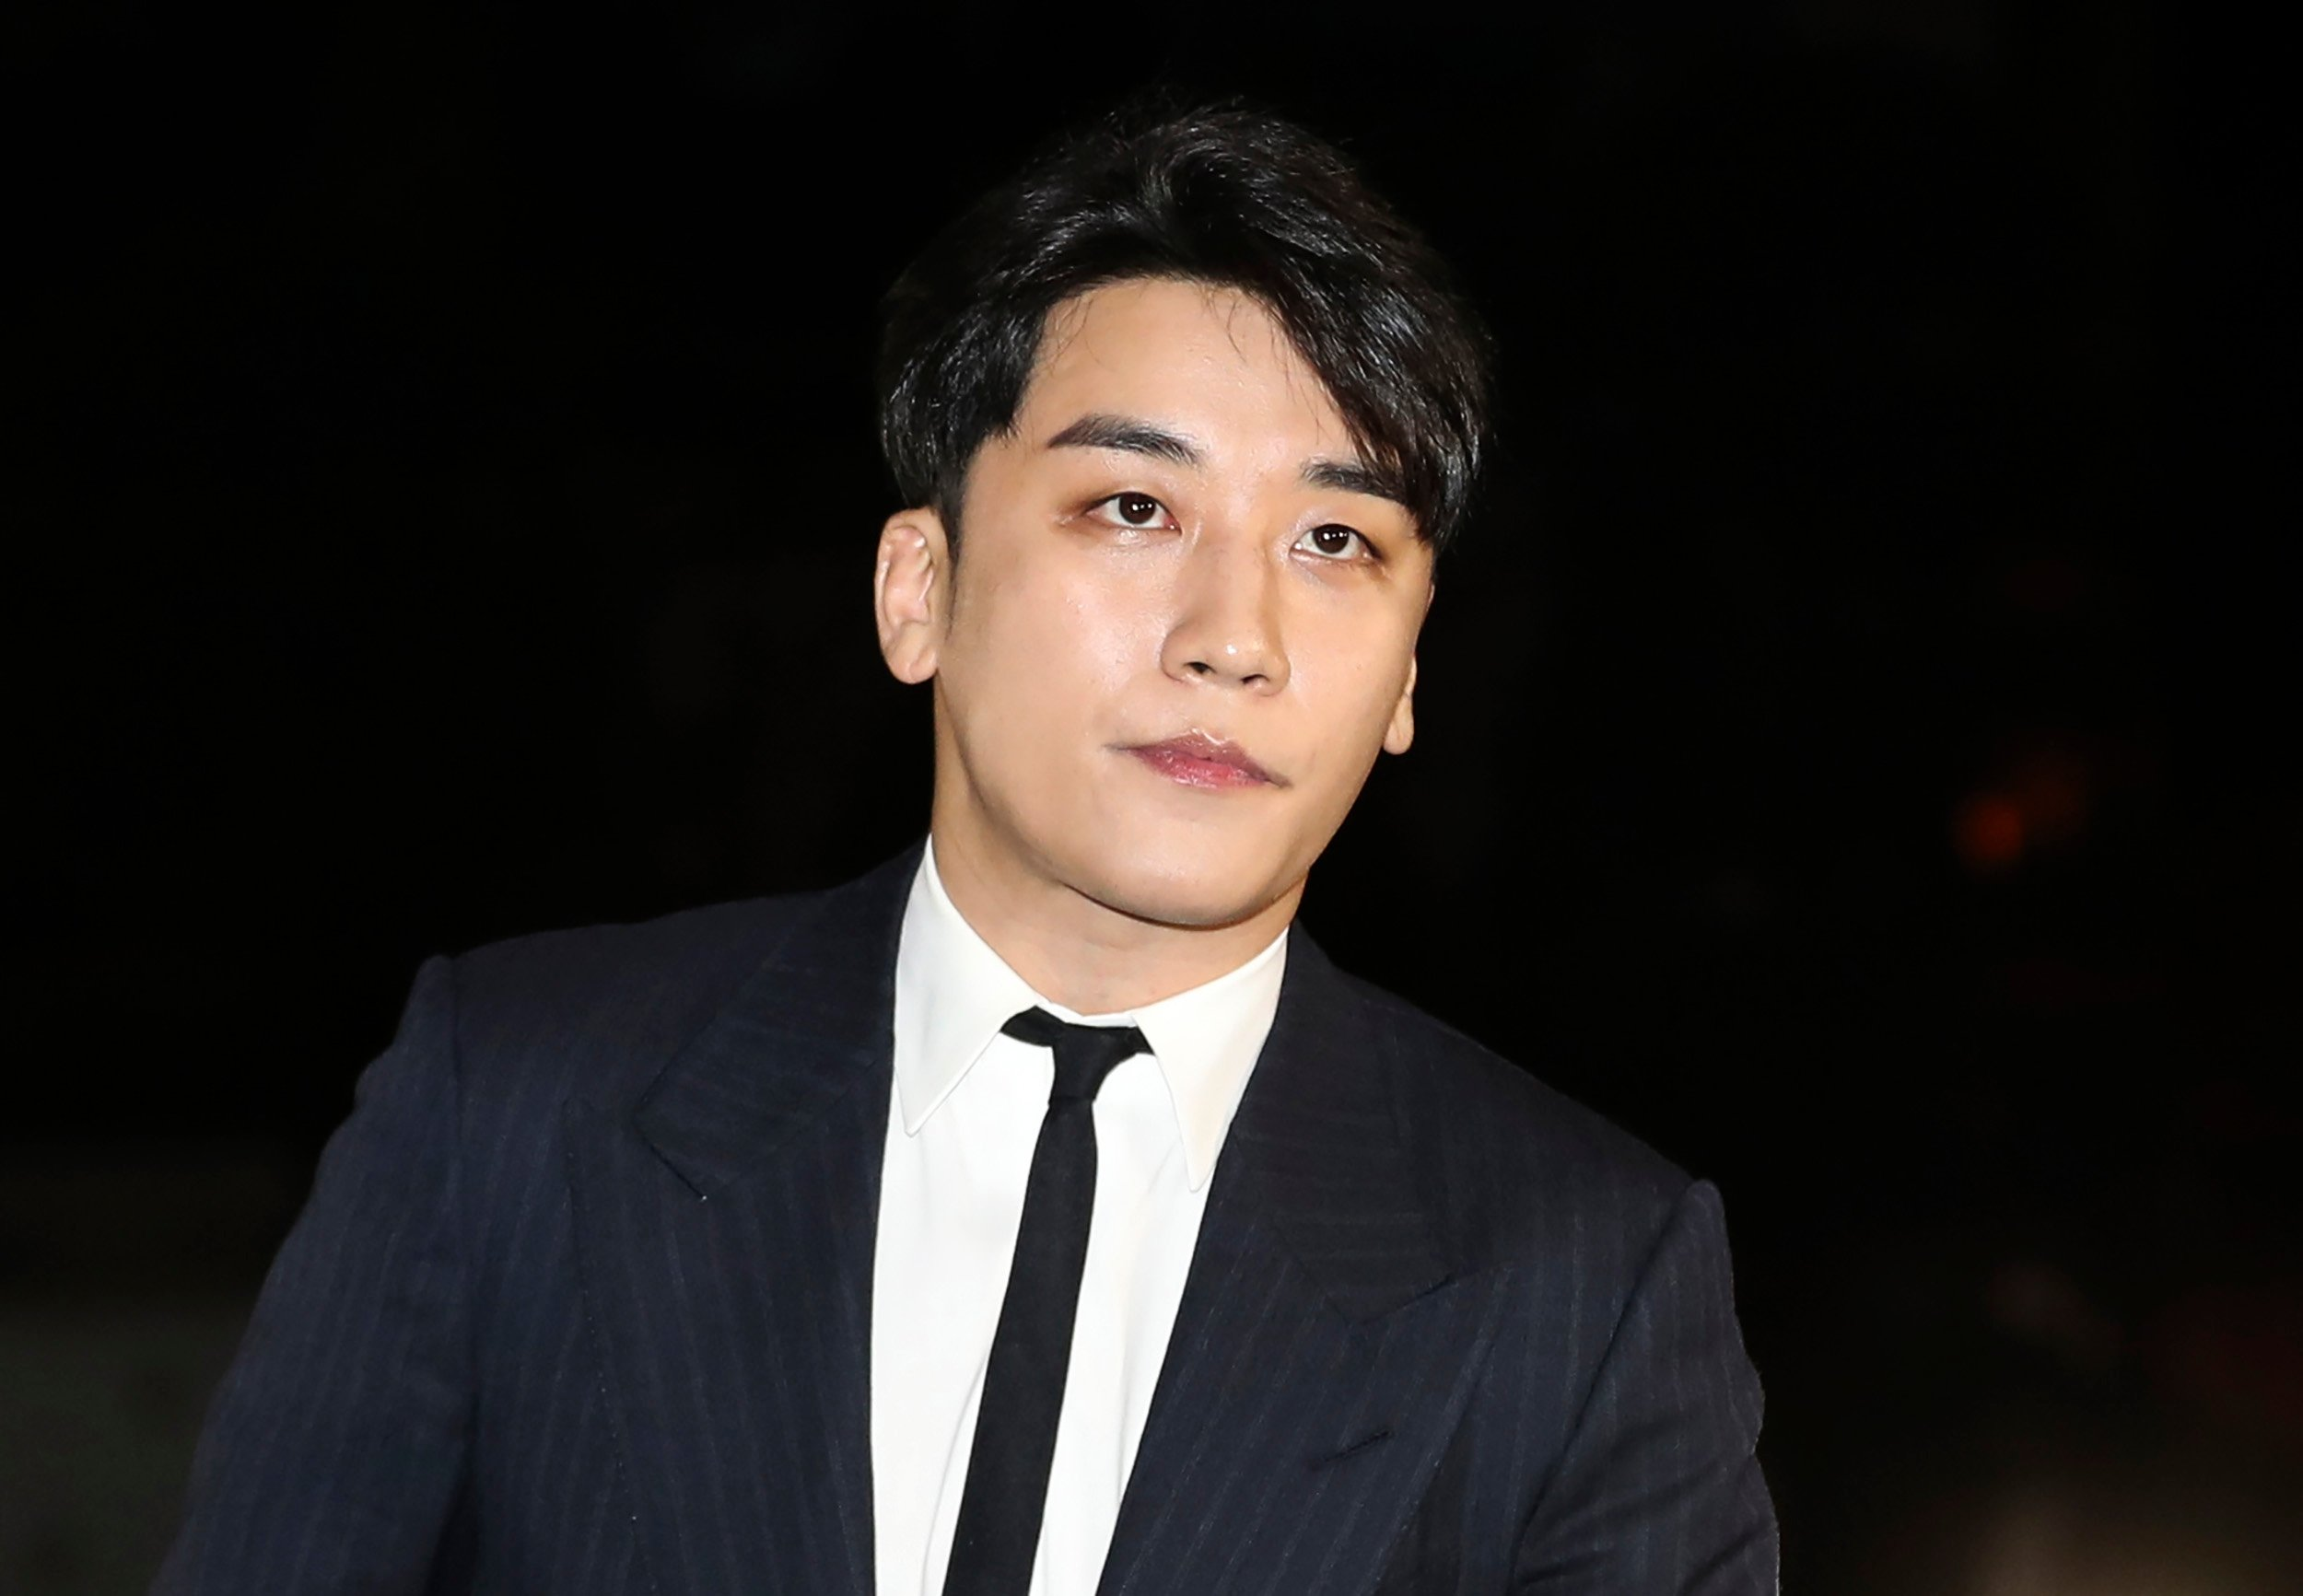 https://asia-247 com/2019/03/29/complete-breakdown-of-seungri